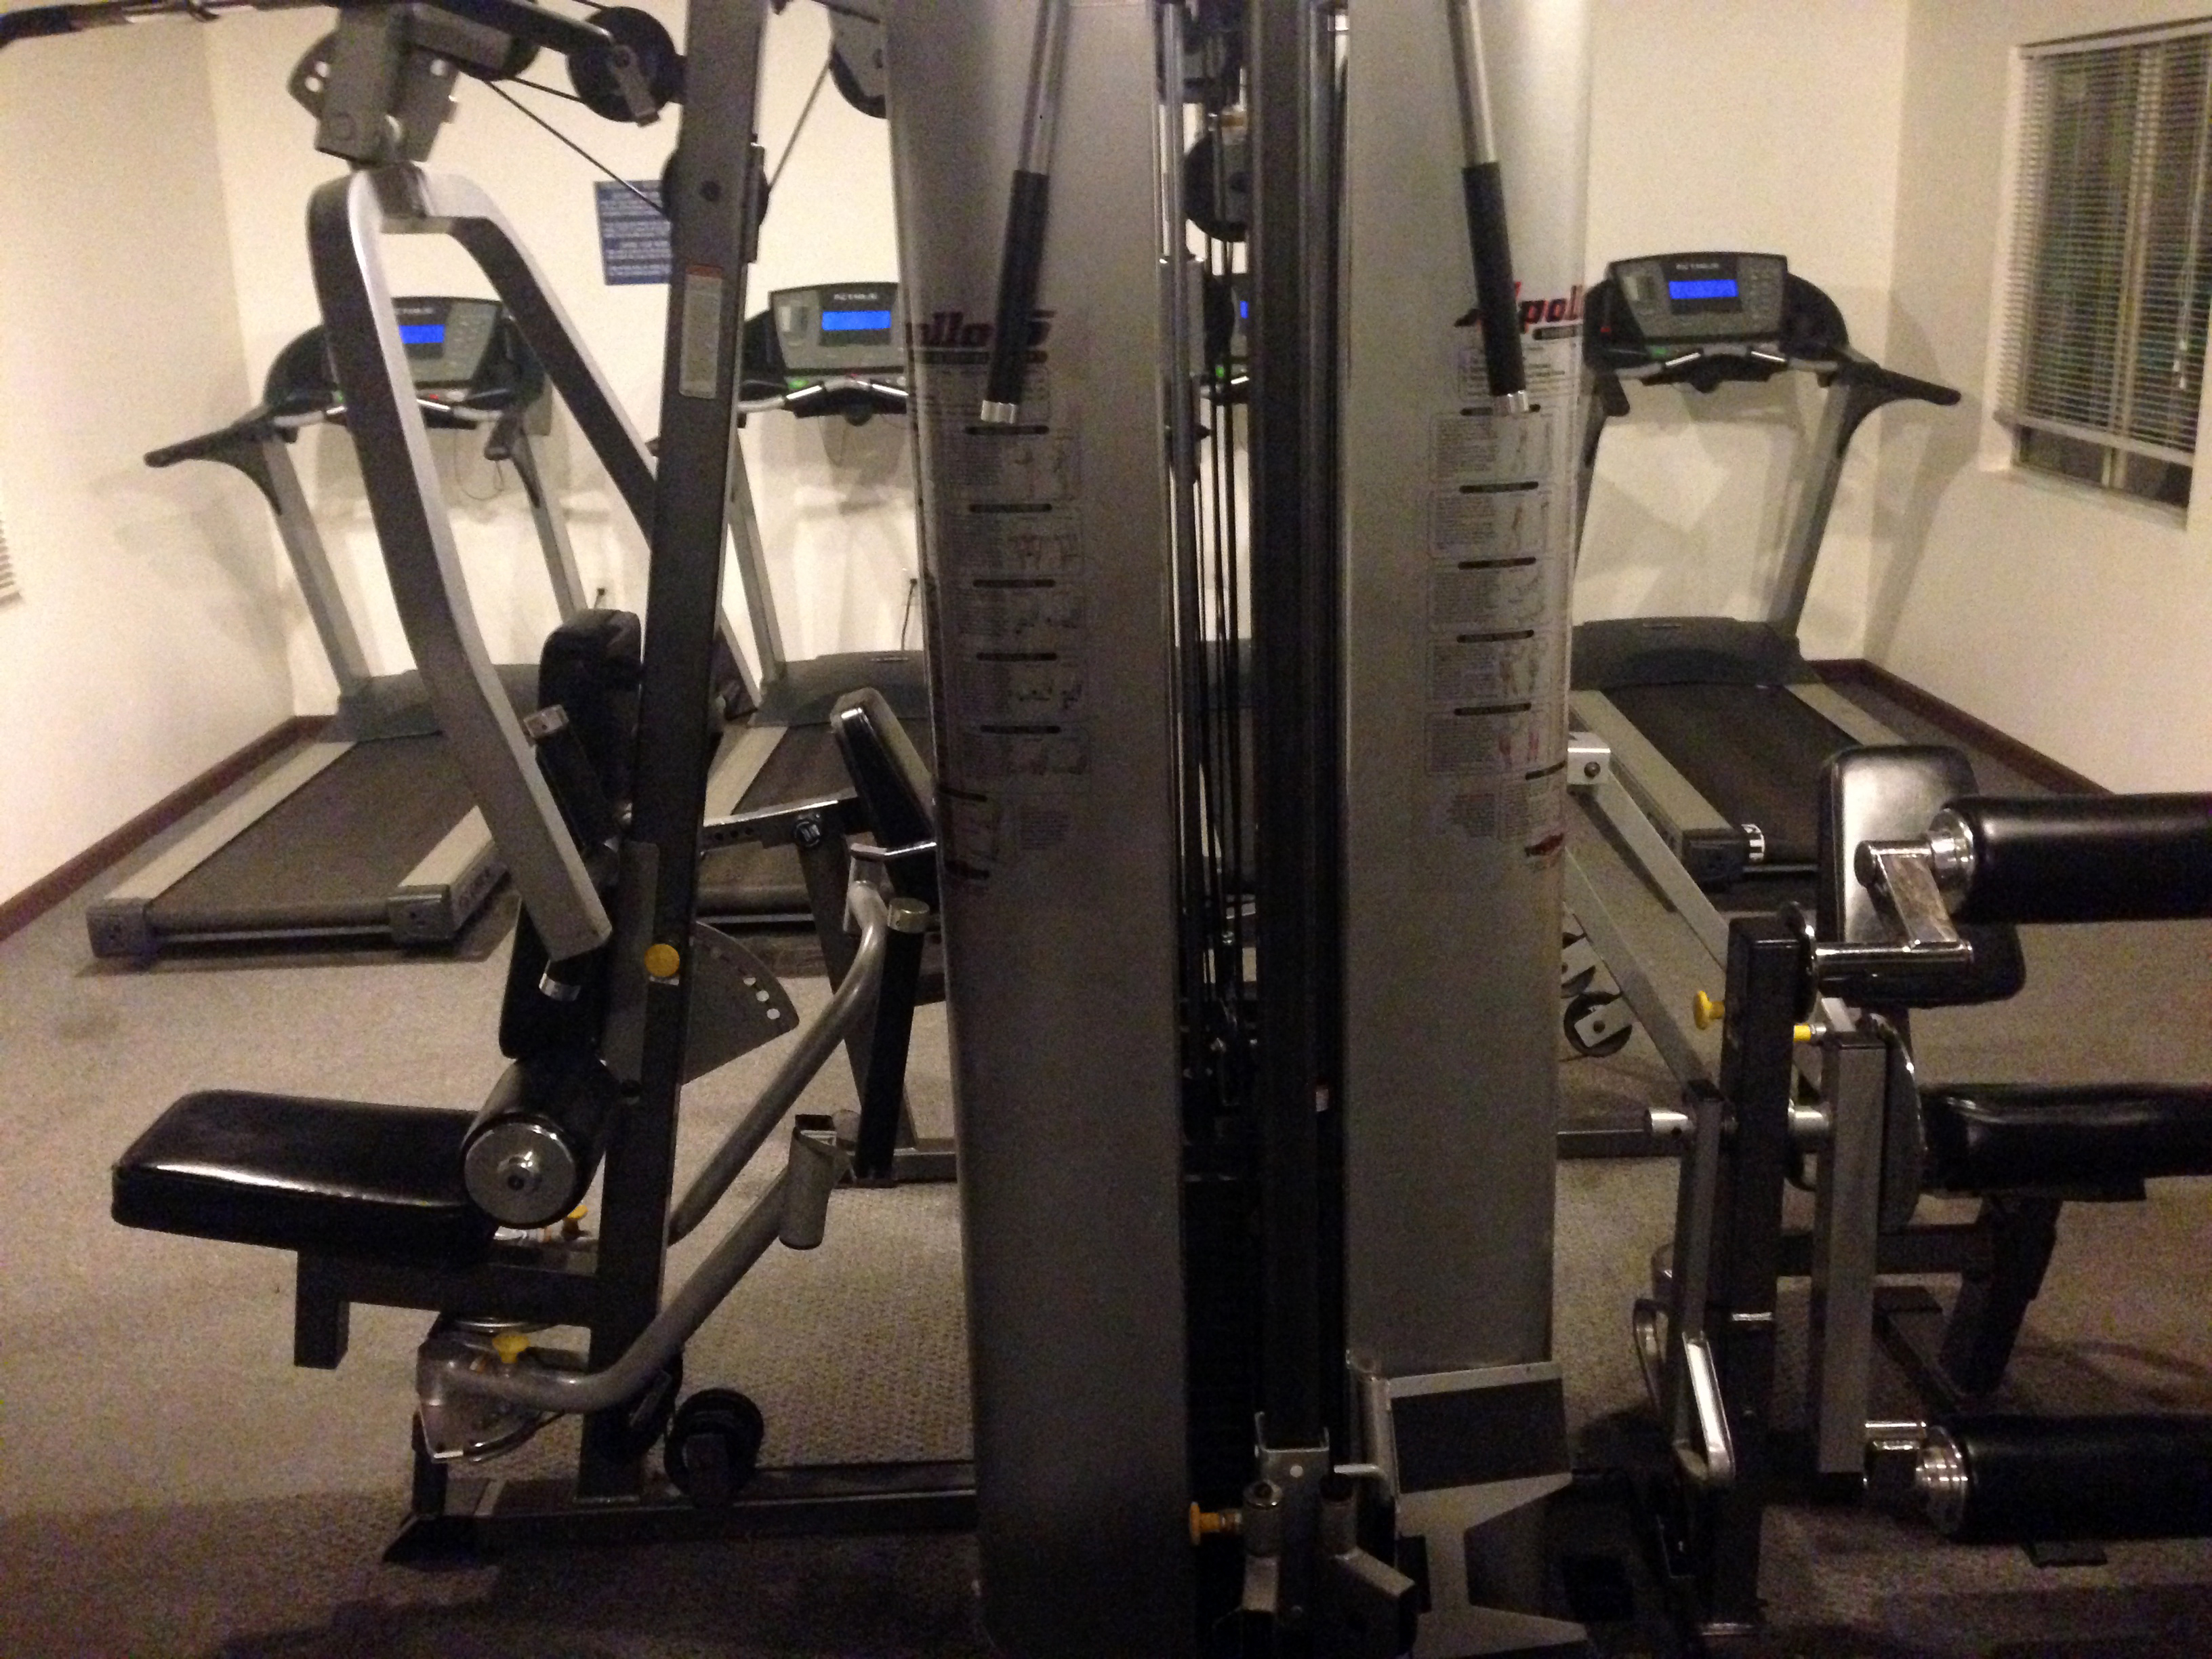 Many RV Resorts have workout facilities for people to stay in shape.